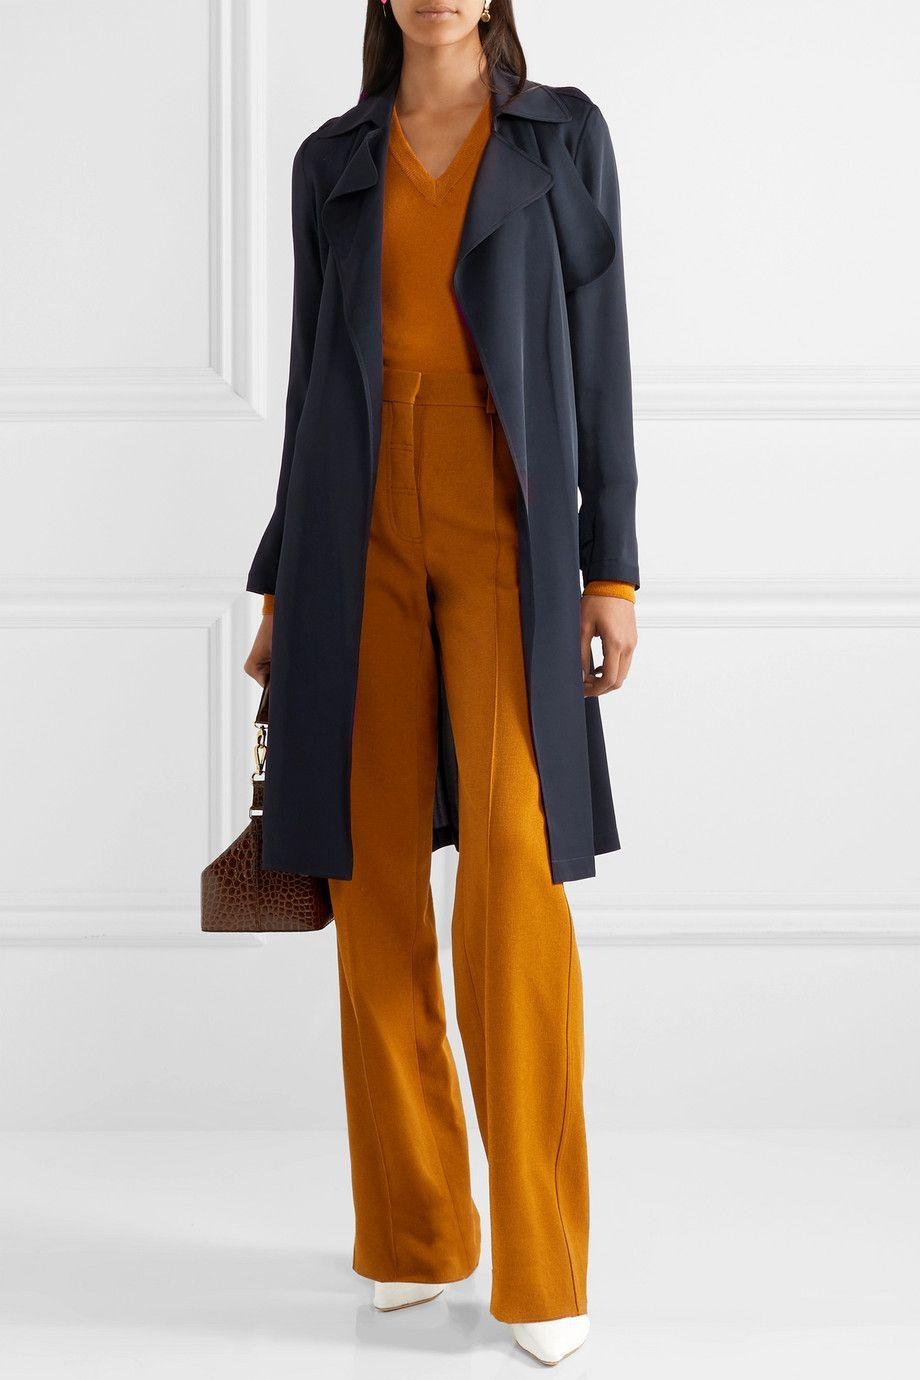 a62abd7c40 Theory - Oaklane silk trench coat in 2019 | 2017 | Coat, Coats for ...